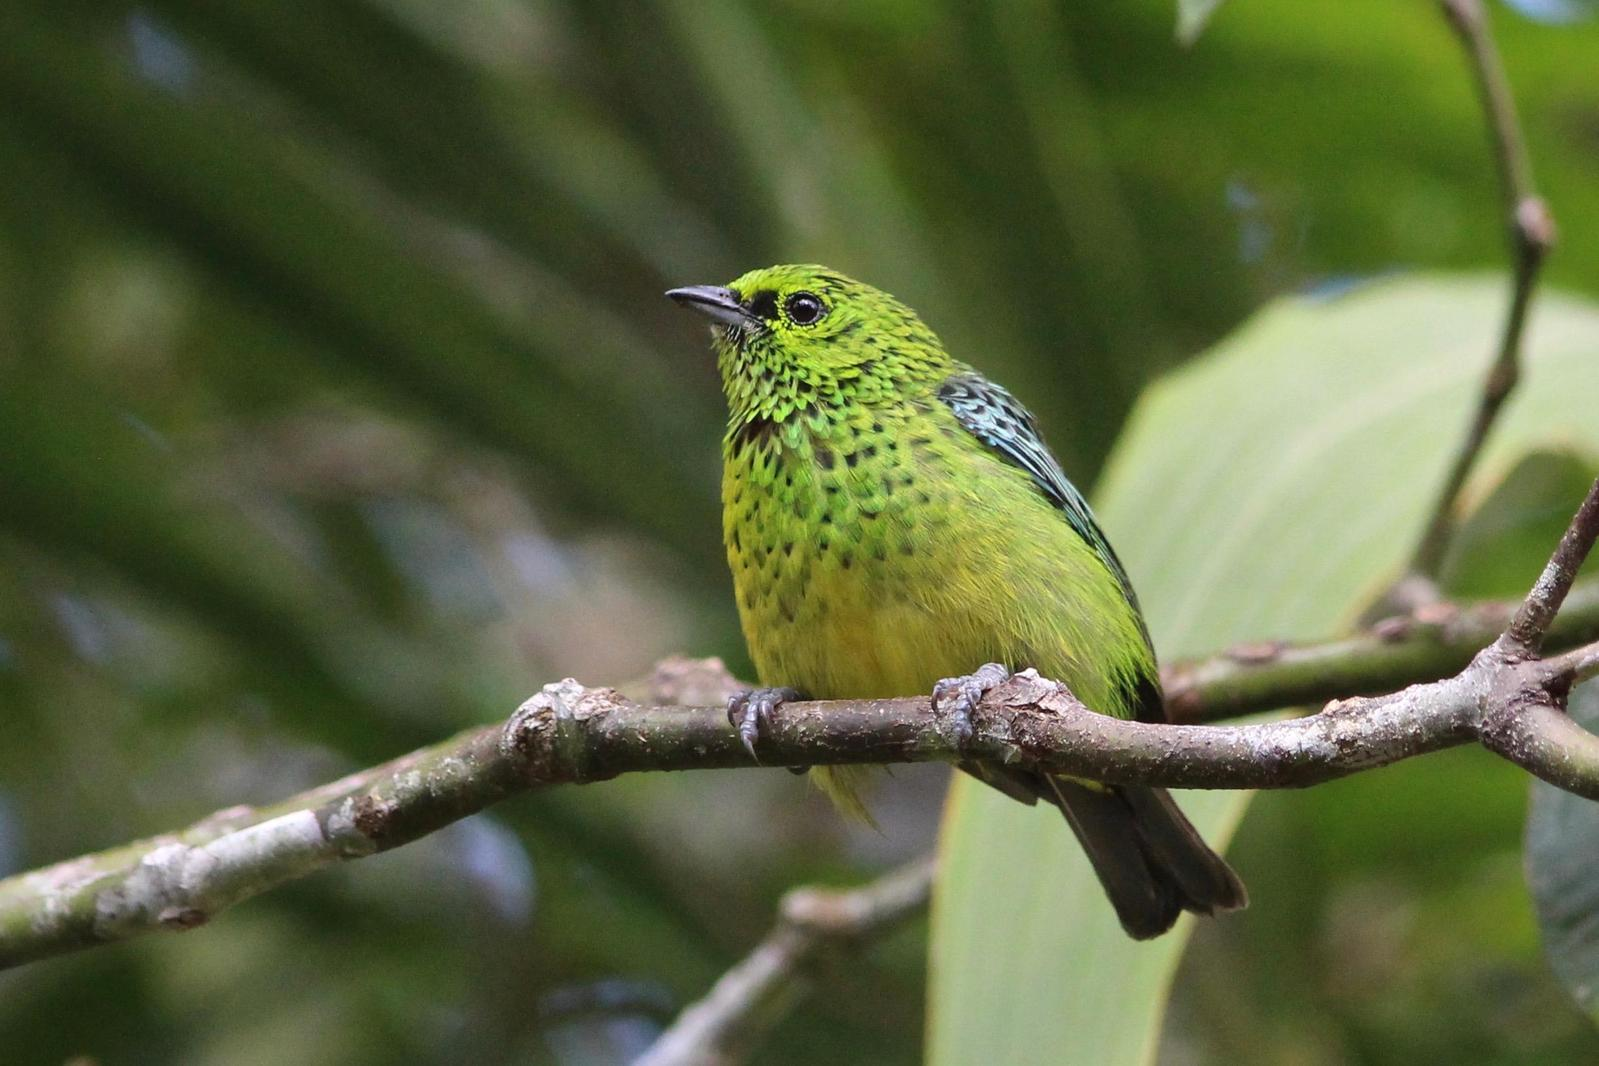 Yellow-bellied Tanager Photo by Oscar Johnson